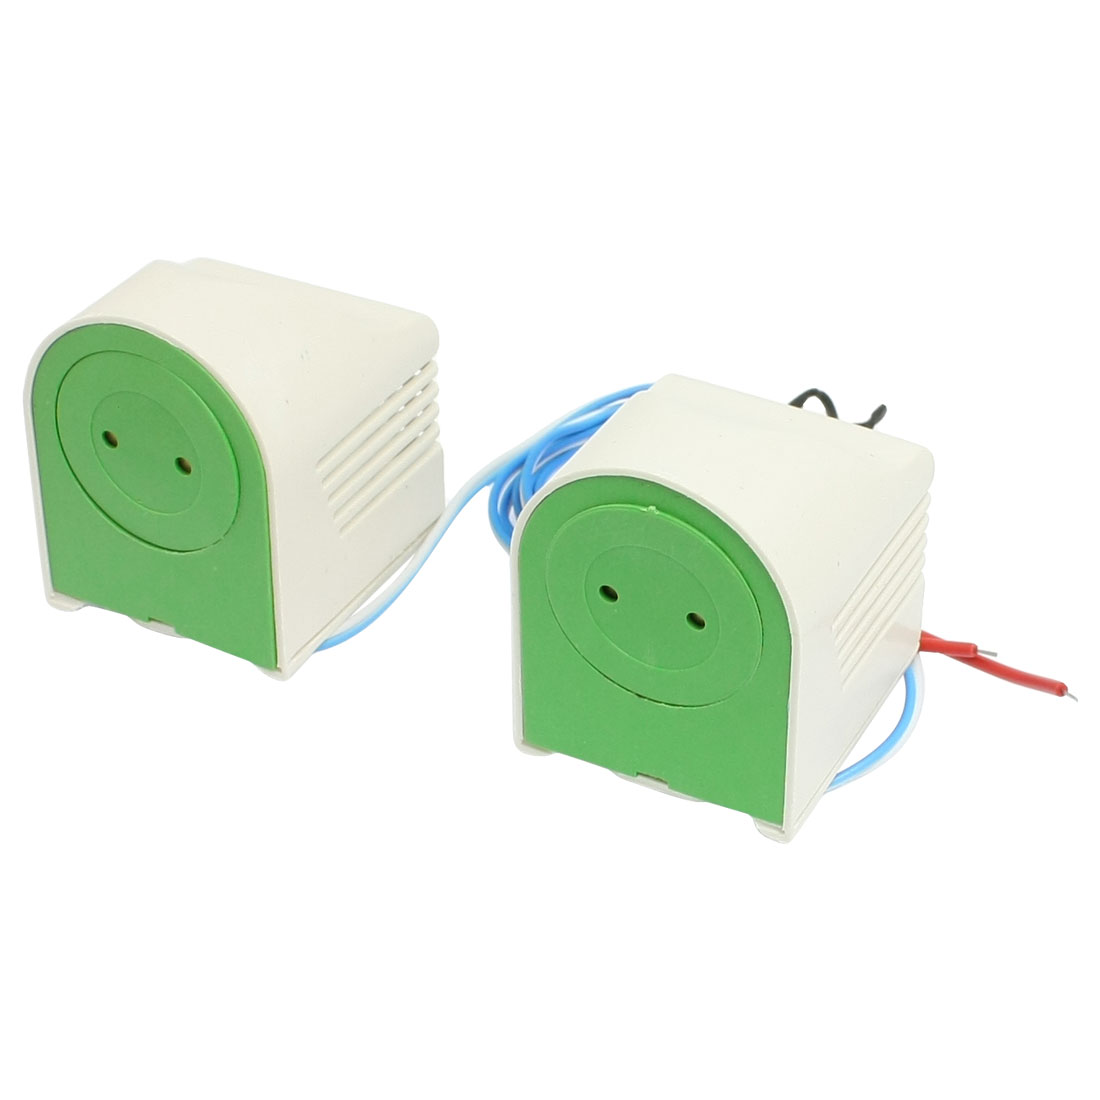 Pair White 40W Energy Saving Fluorescent Lamp Holder Ballast